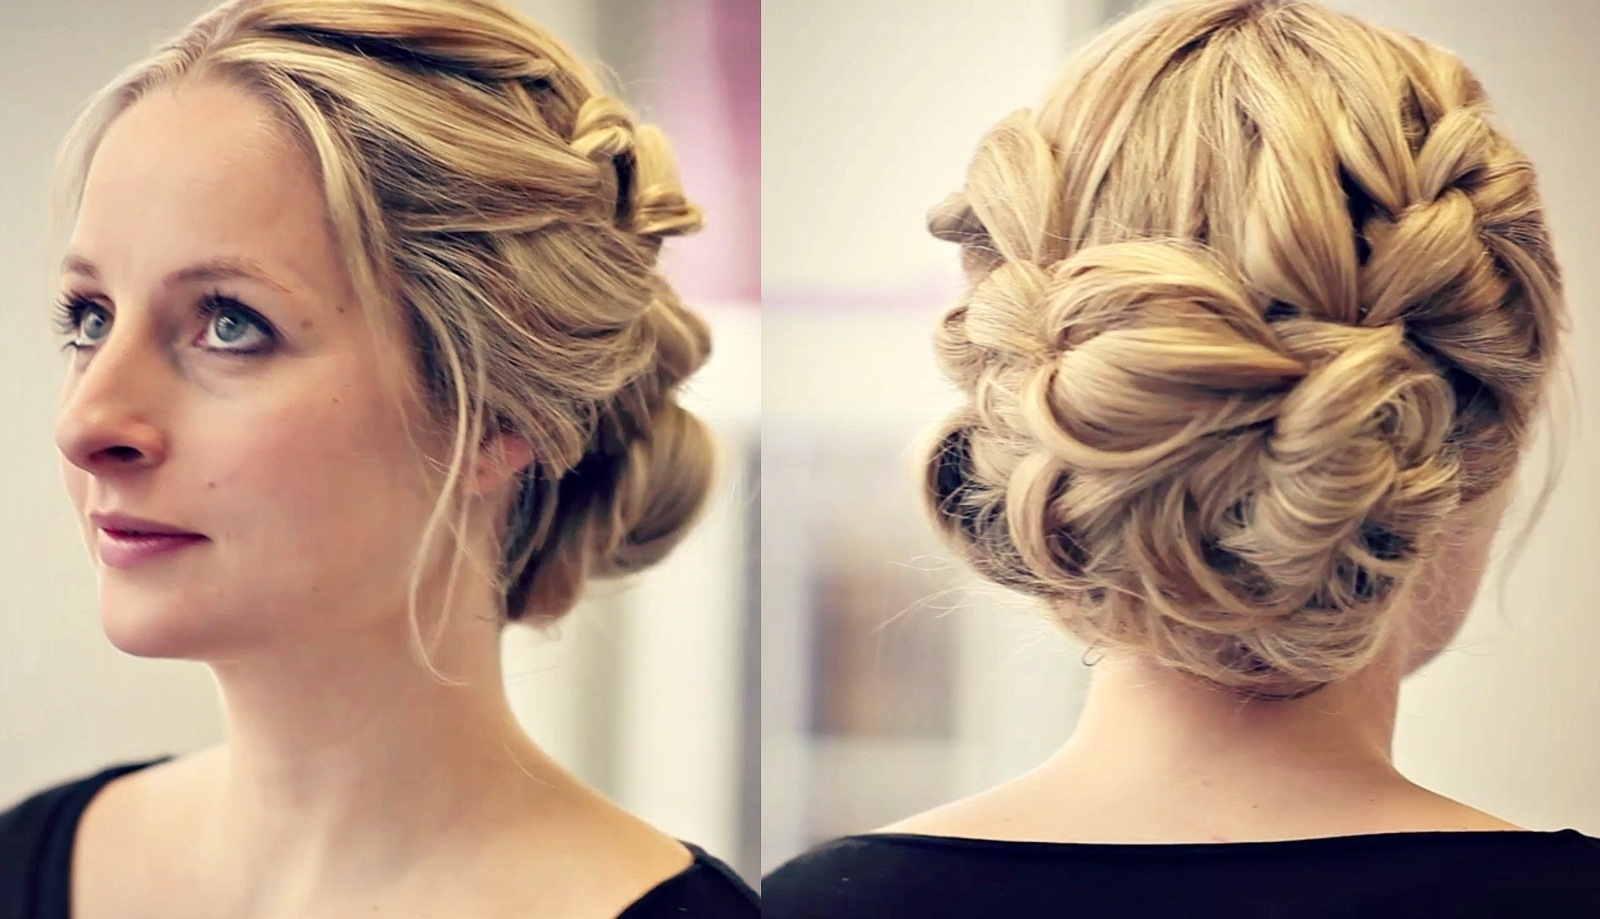 Updo Hairstyles For Weddings Mother Of The Bride – Hairstyle For With Regard To Mother Of The Bride Updo Hairstyles For Short Hair (View 3 of 15)